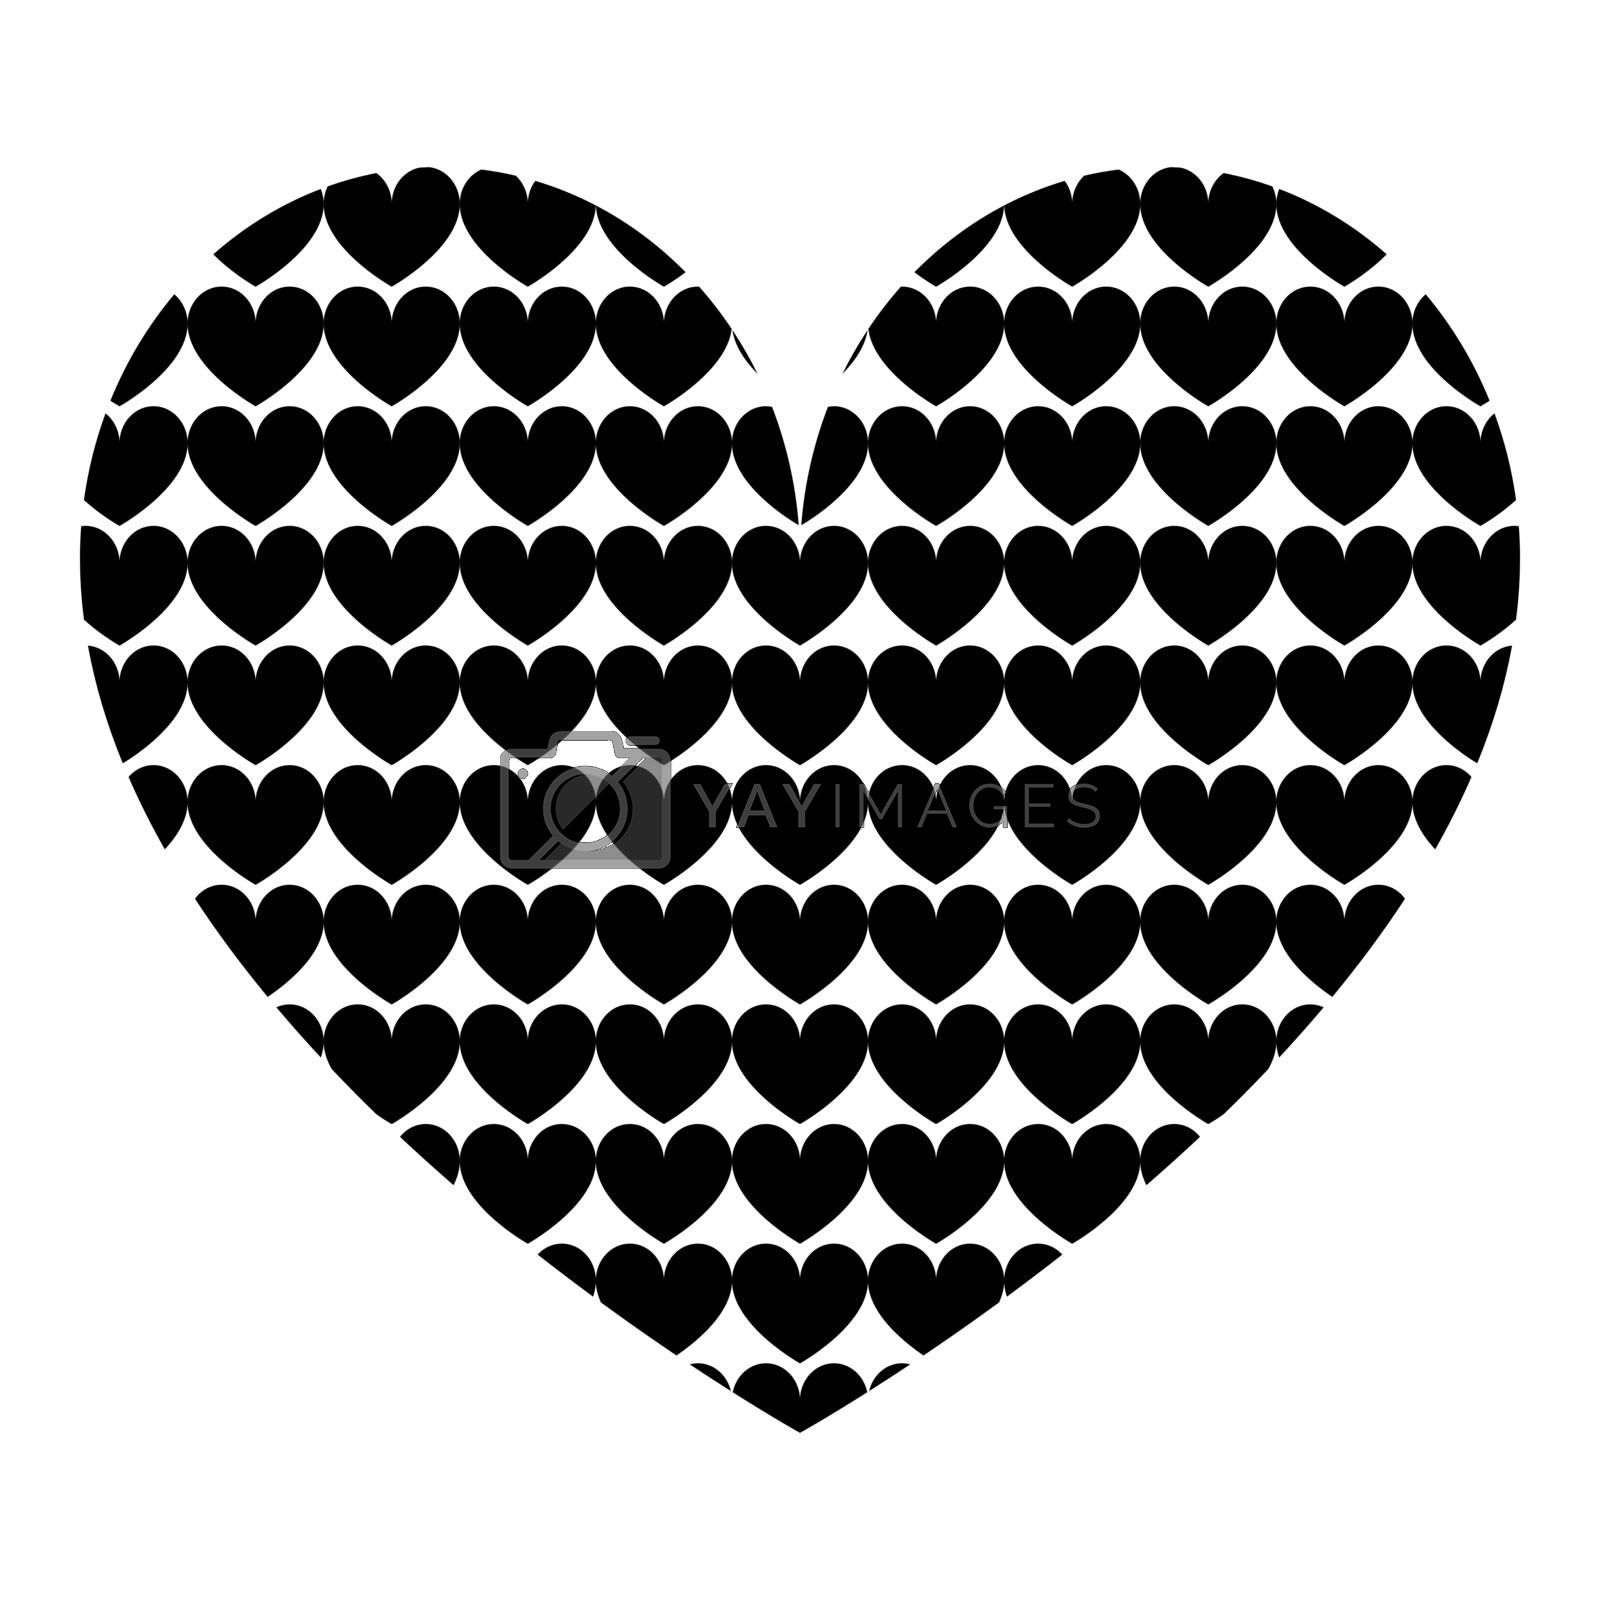 Heart with hearts inside Heart pattern in heart icon black color vector illustration flat style simple image